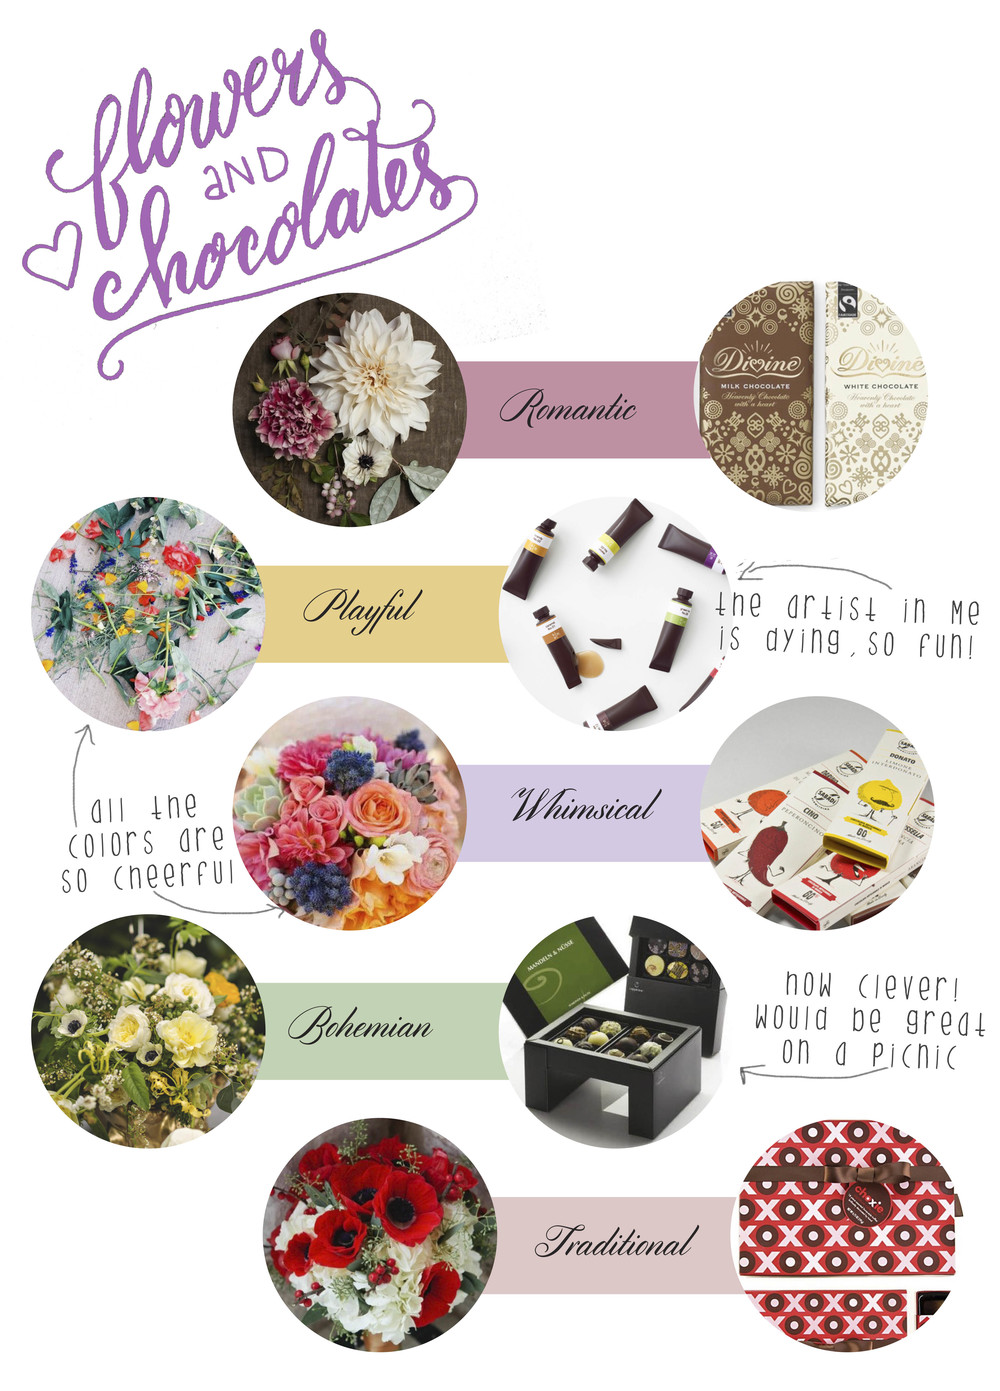 ChocolatesandFlowers_1.jpg